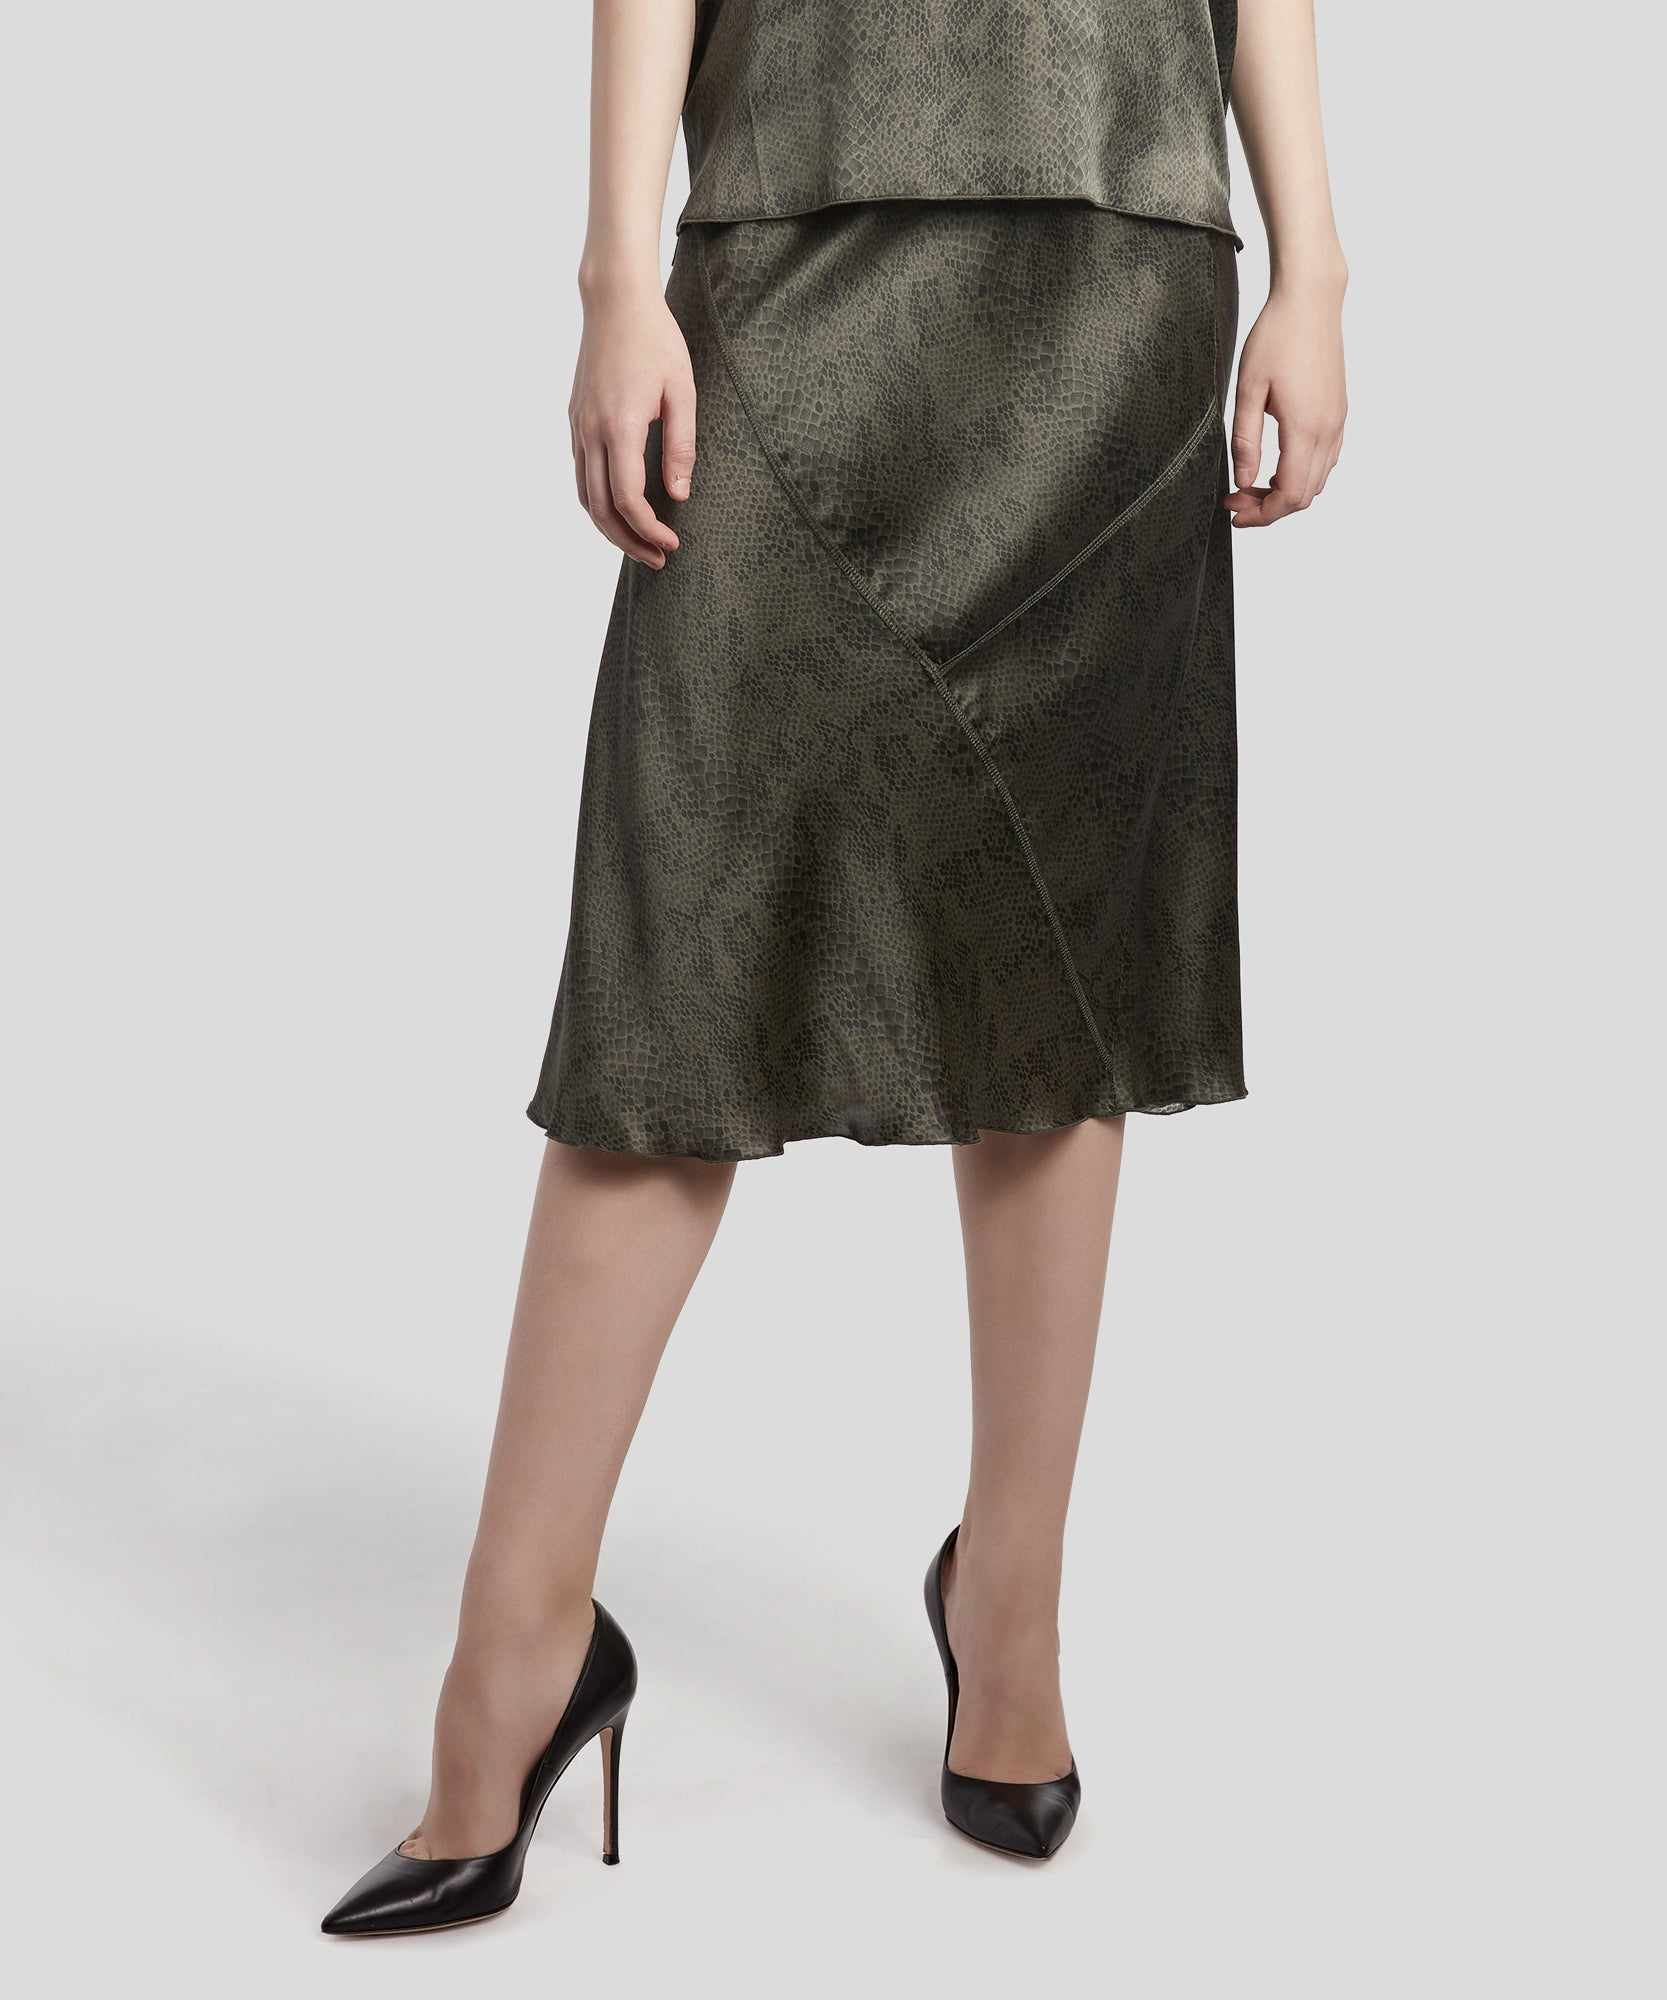 Jungle Combo Snake Print Silk Pull-On Skirt - Women's Silk Skirt by ATM Anthony Thomas Melillo